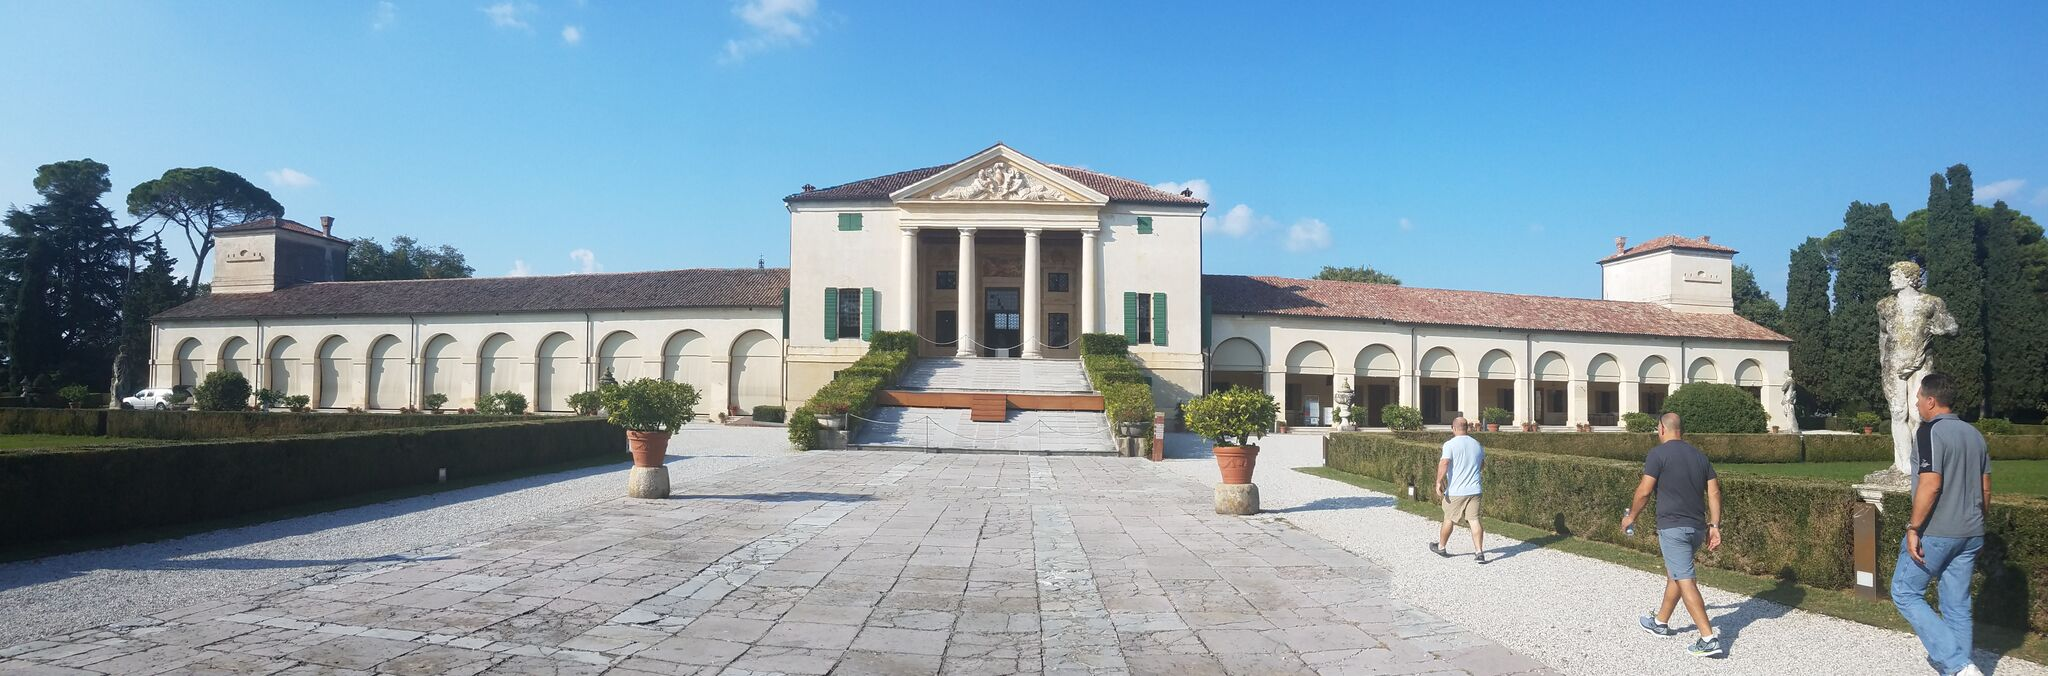 Villa Emo by Palladio_preview.jpeg